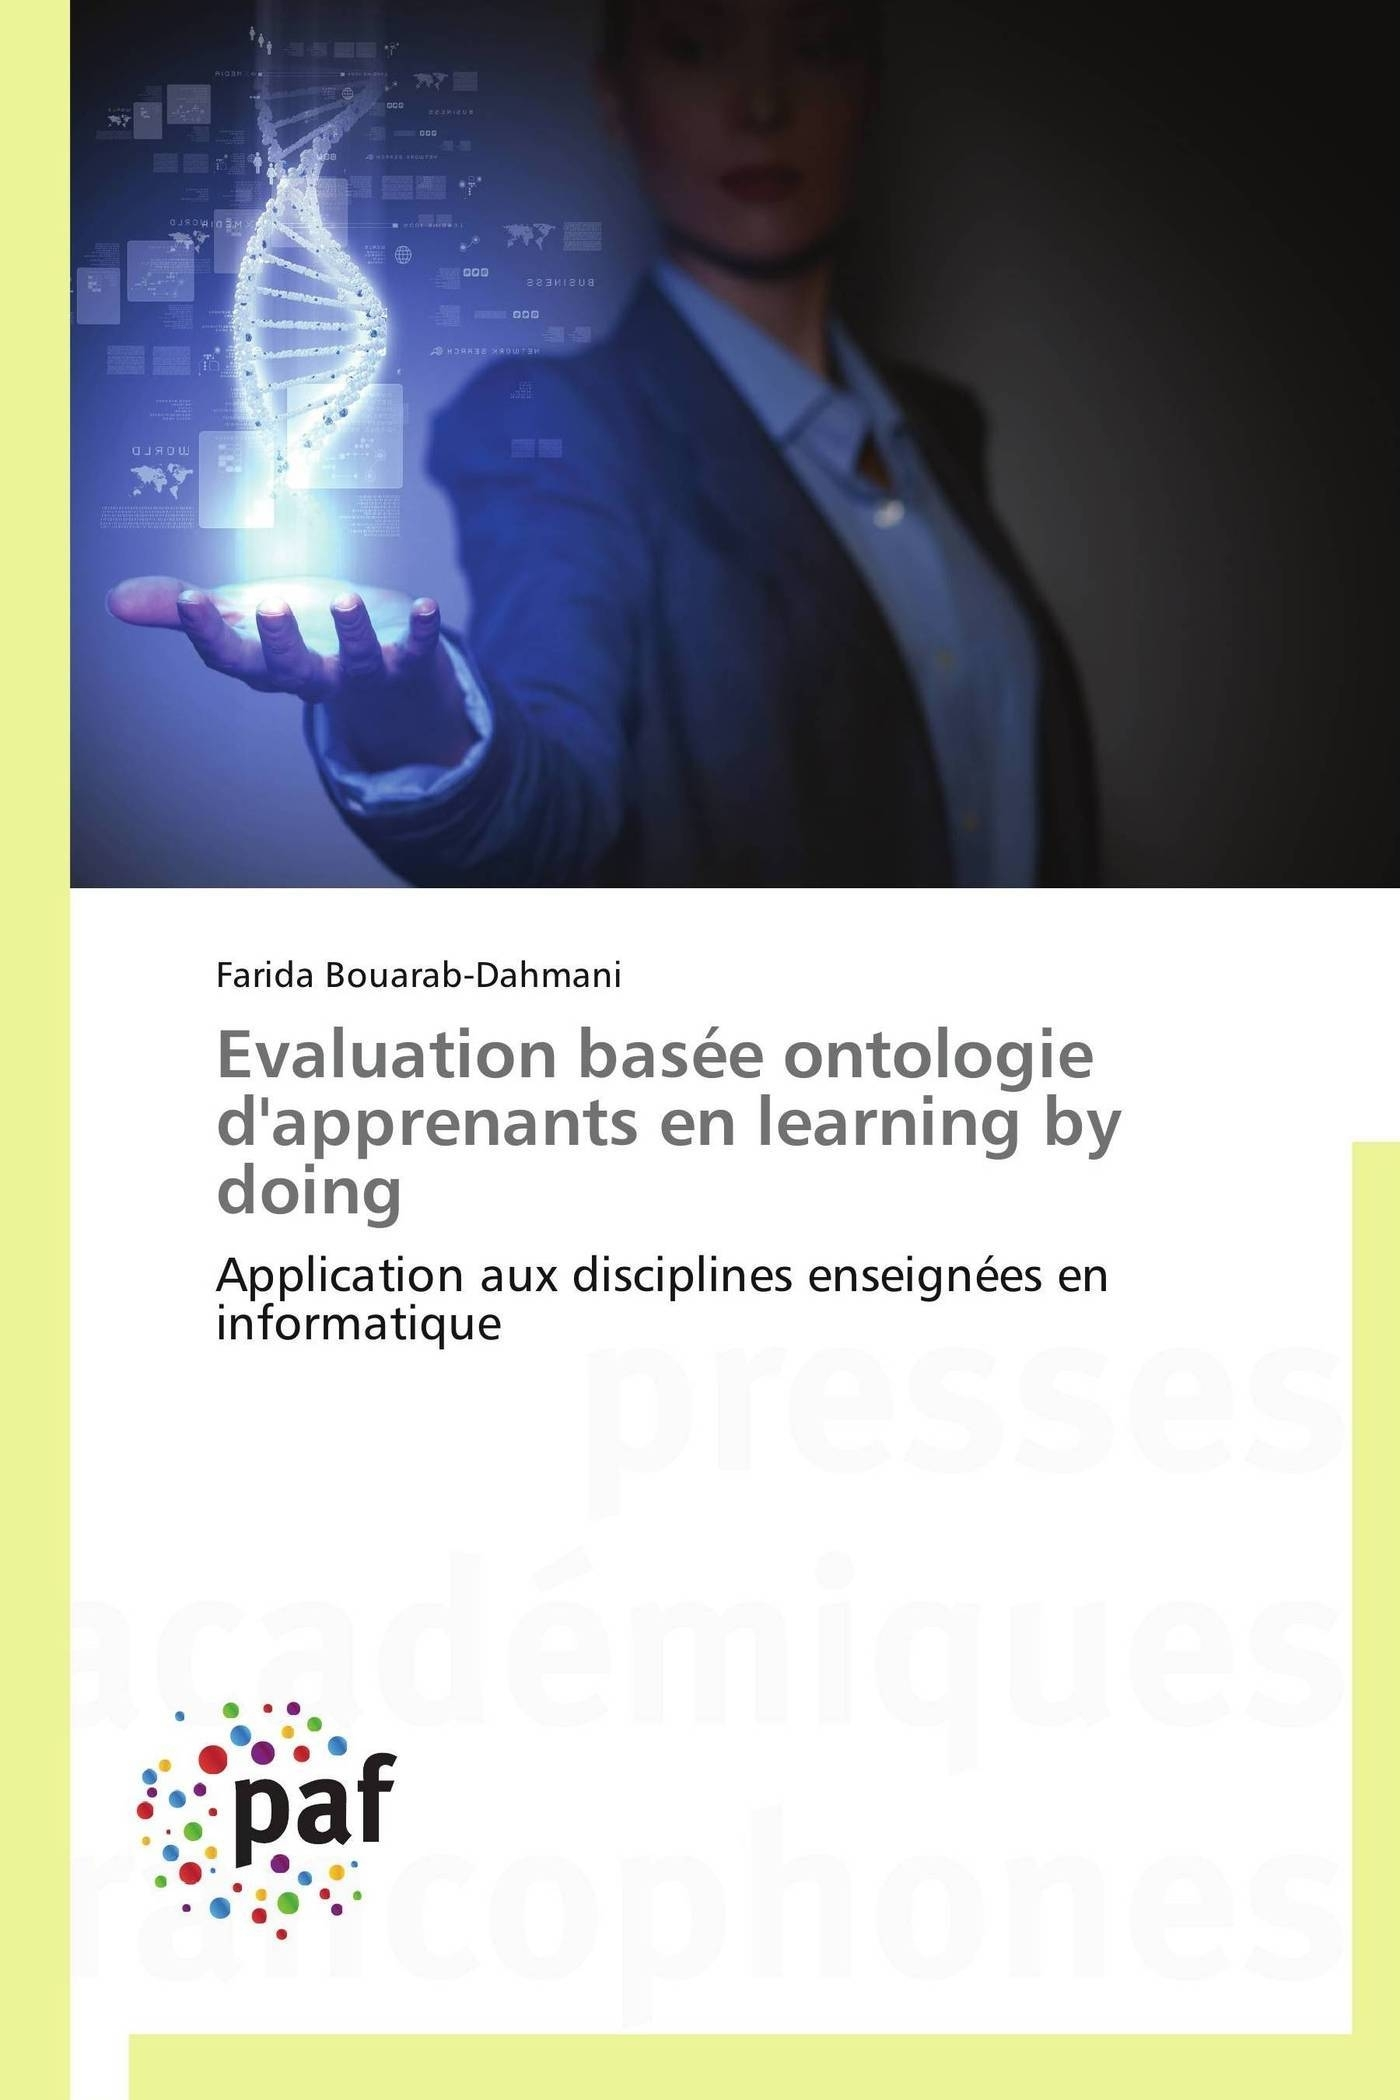 EVALUATION BASEE ONTOLOGIE D'APPRENANTS EN LEARNING BY DOING